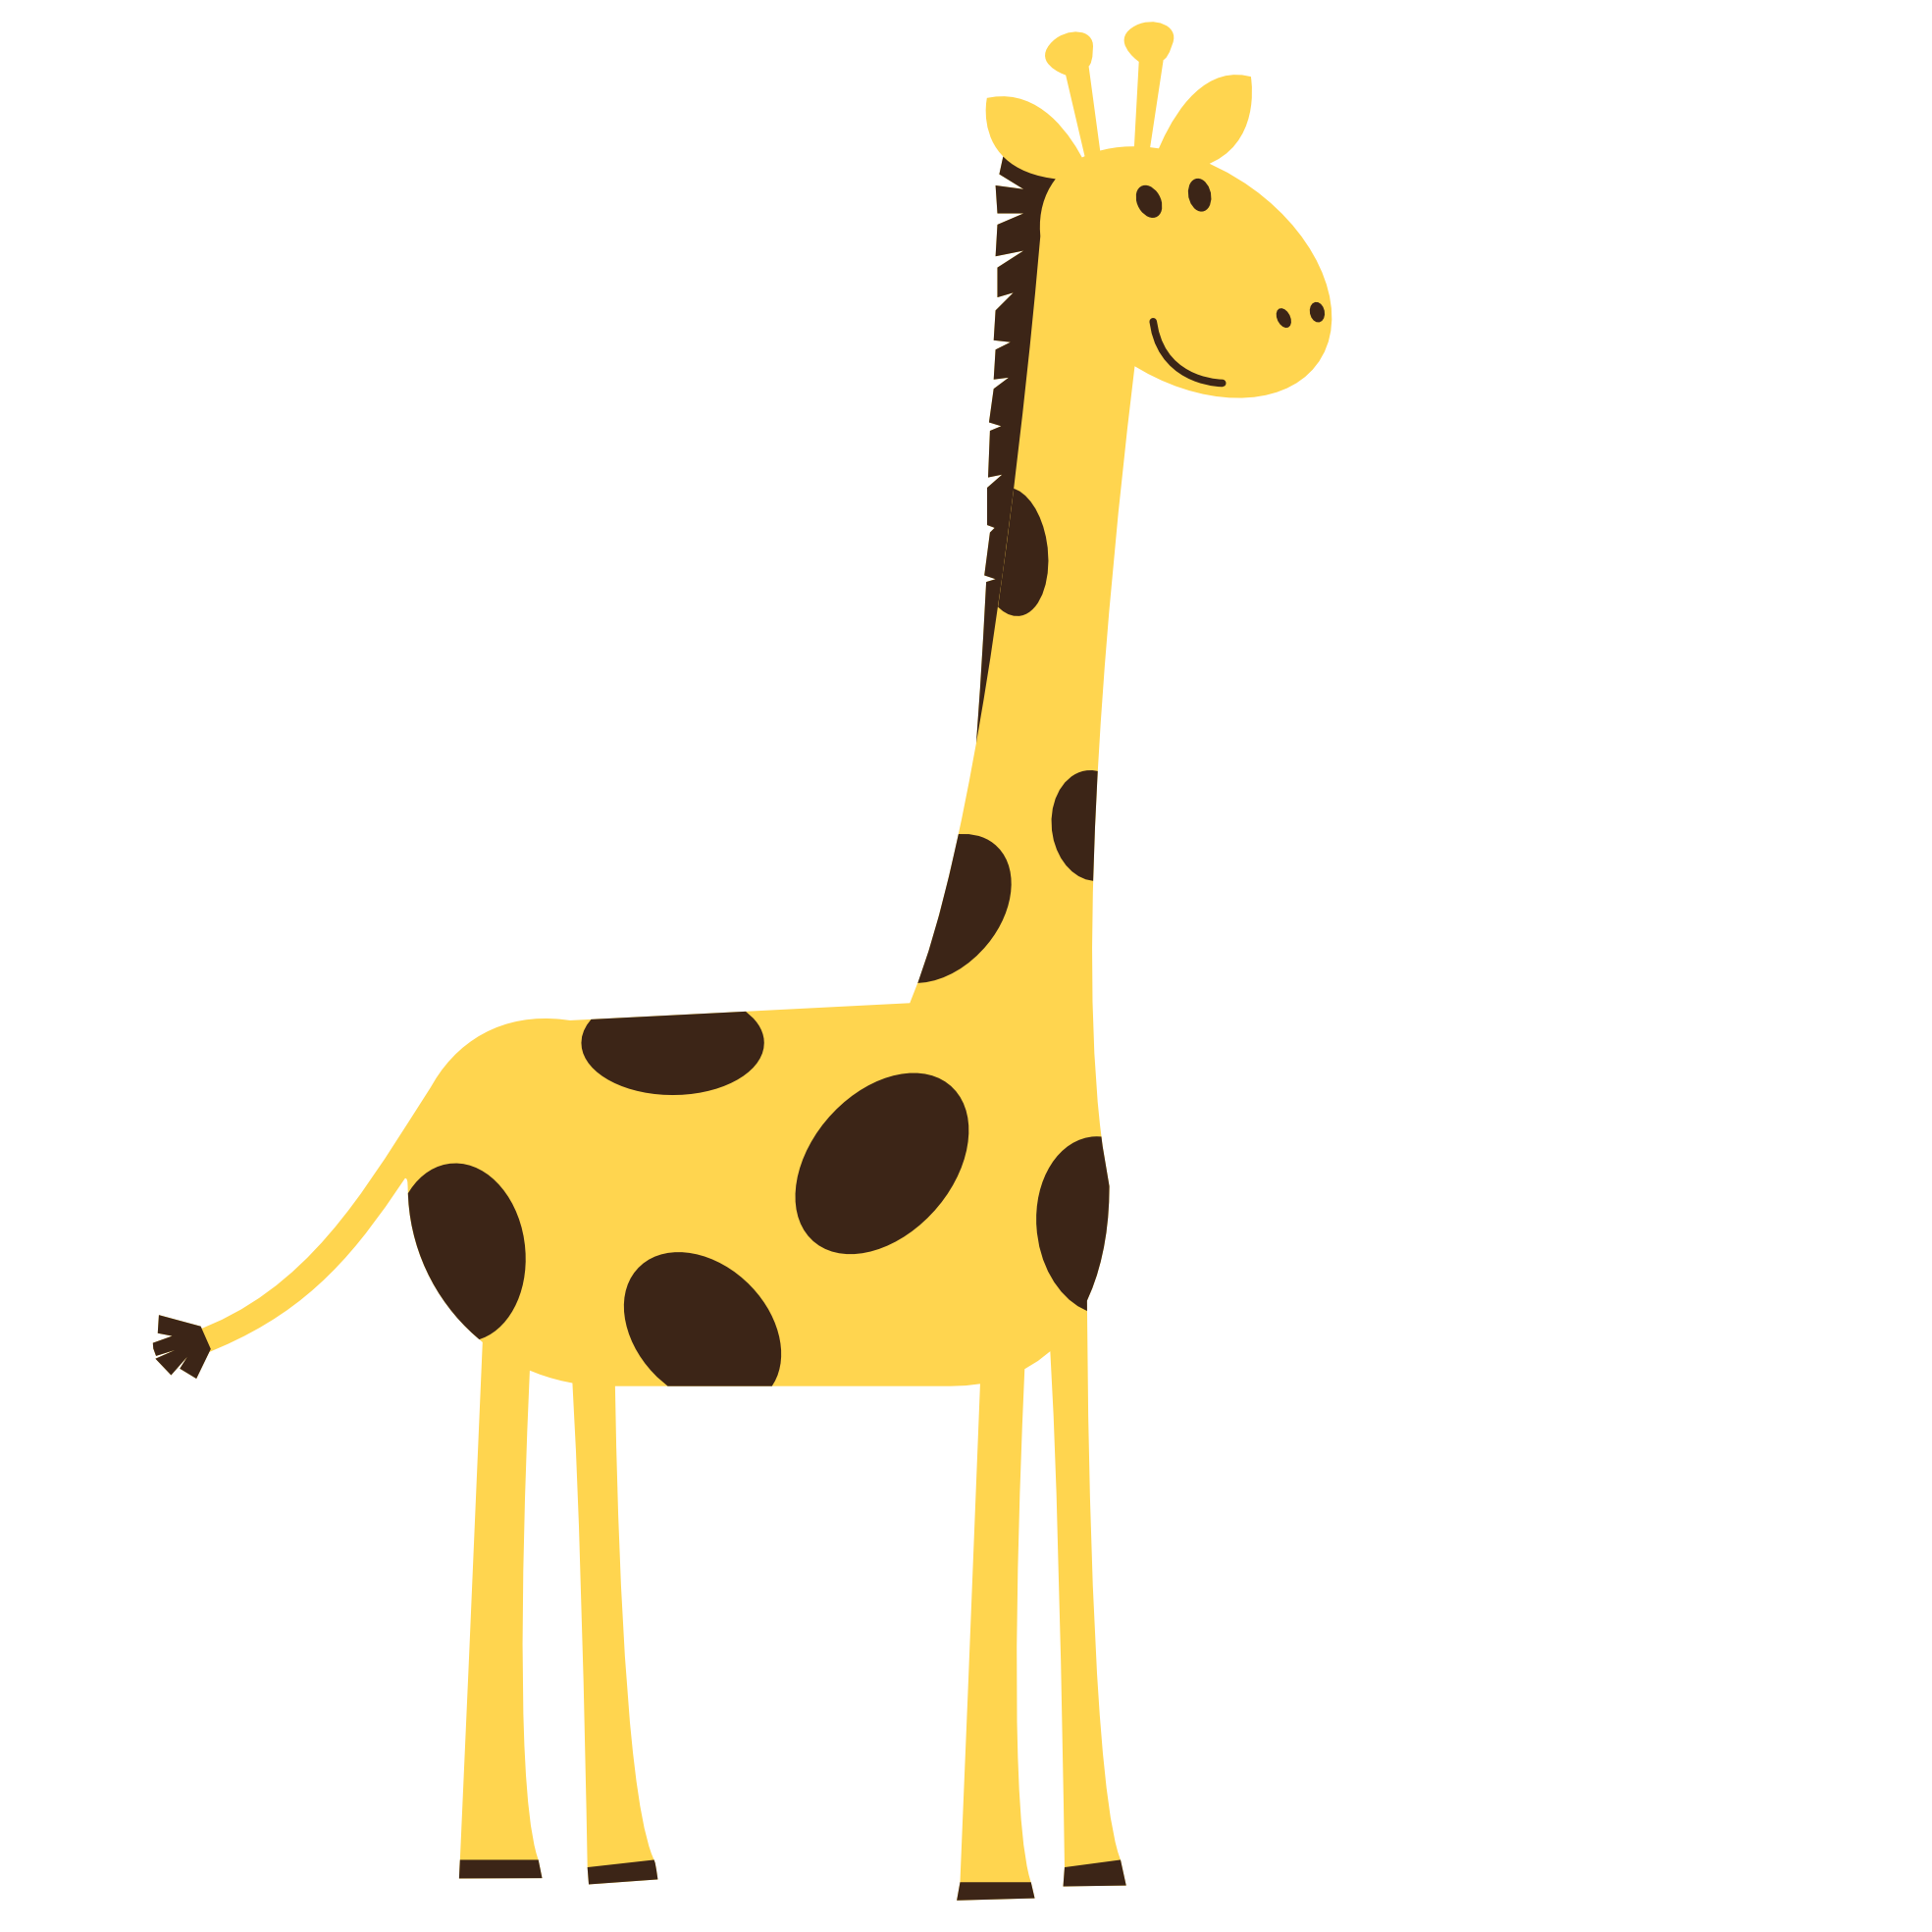 Clipart shapes comic. Vector giraffe soldiertank pinterest